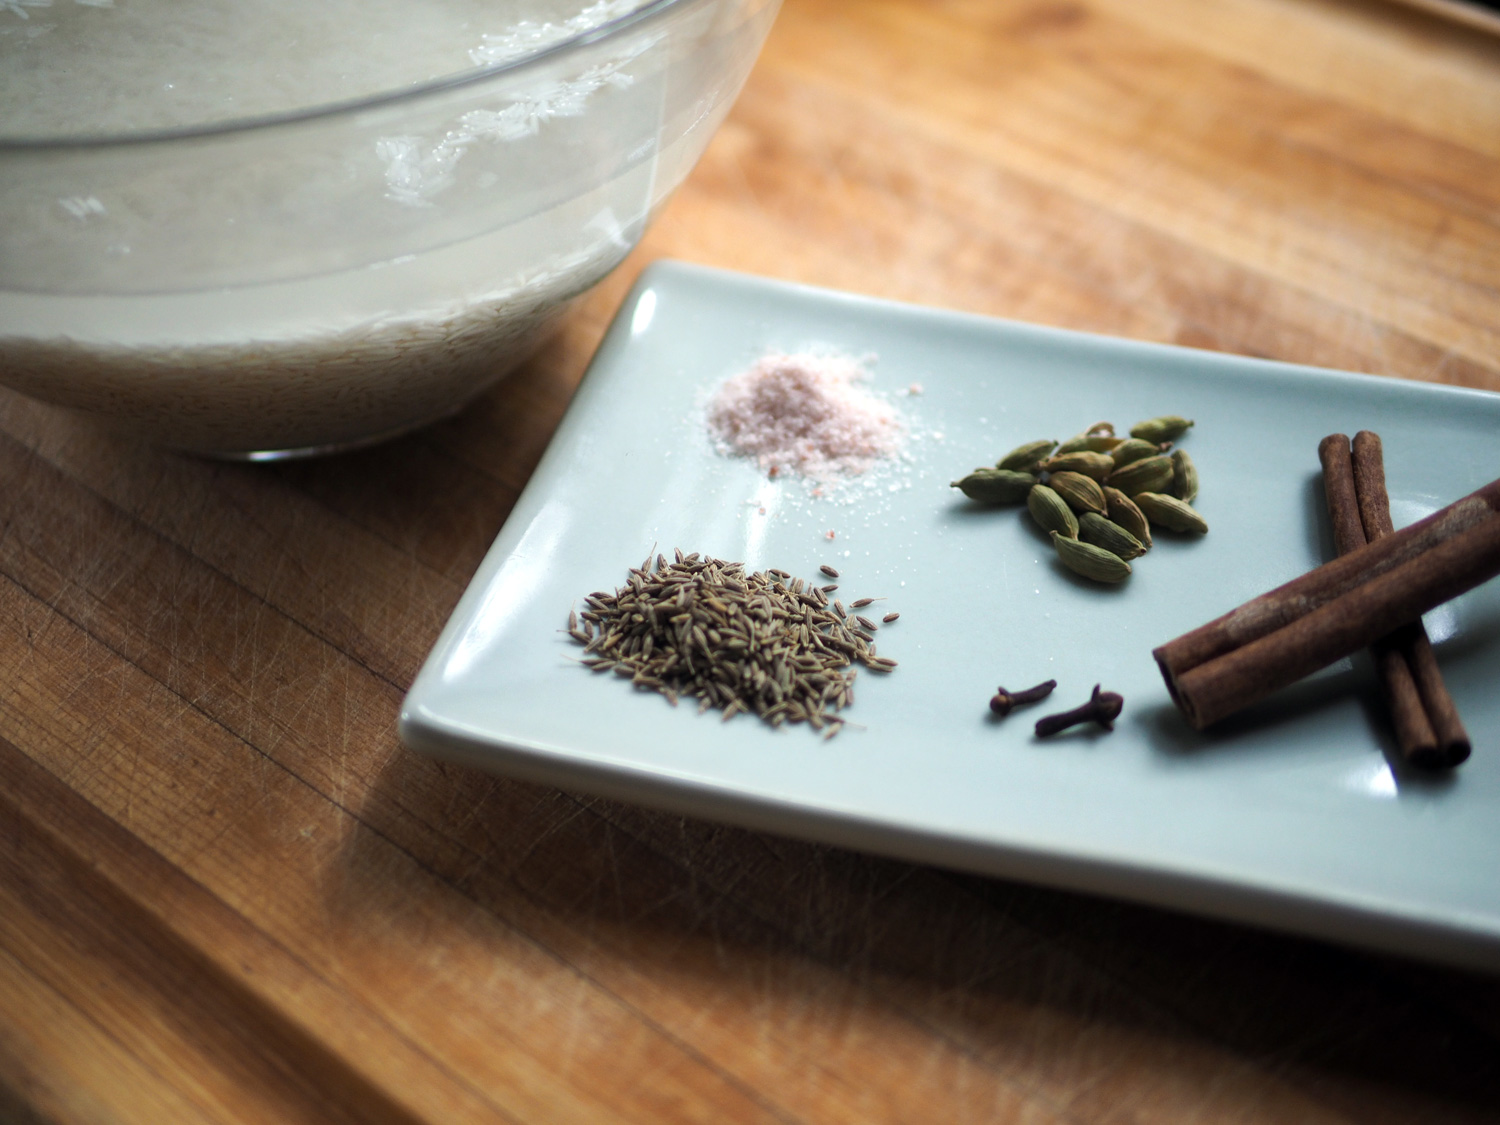 Mise en place, get everything ready and in place. Salt, cardamon seeds, cinnamon sticks, cloves, cumin seeds.